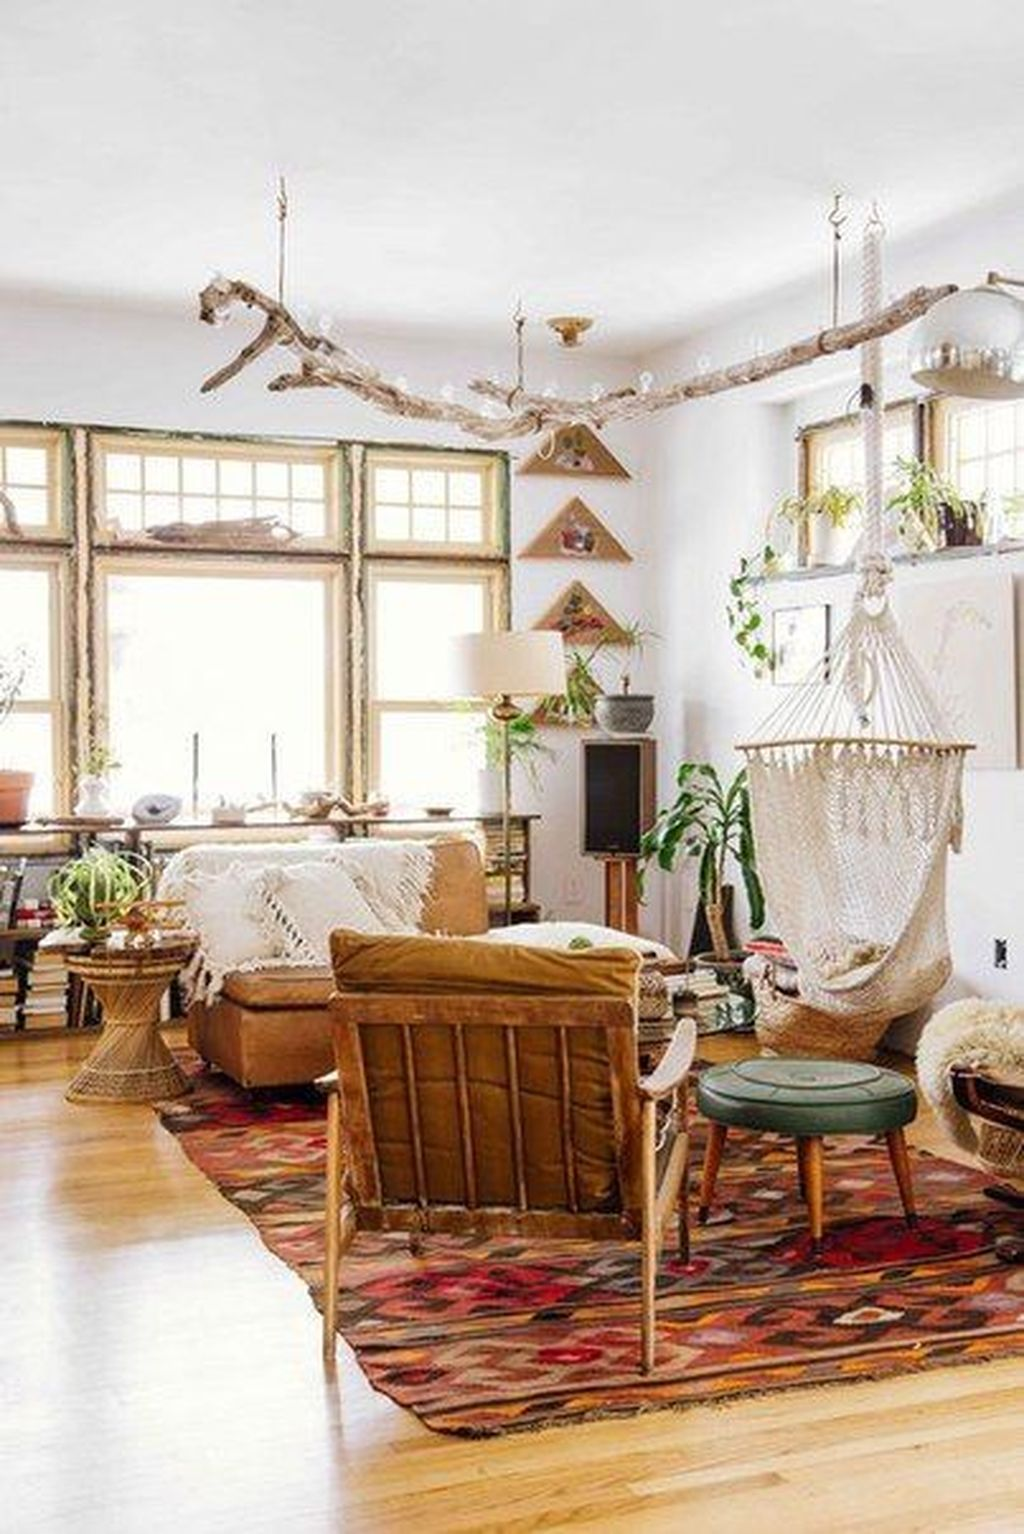 43 Elegant Bohemian Style Living Room Decoration Ideas images